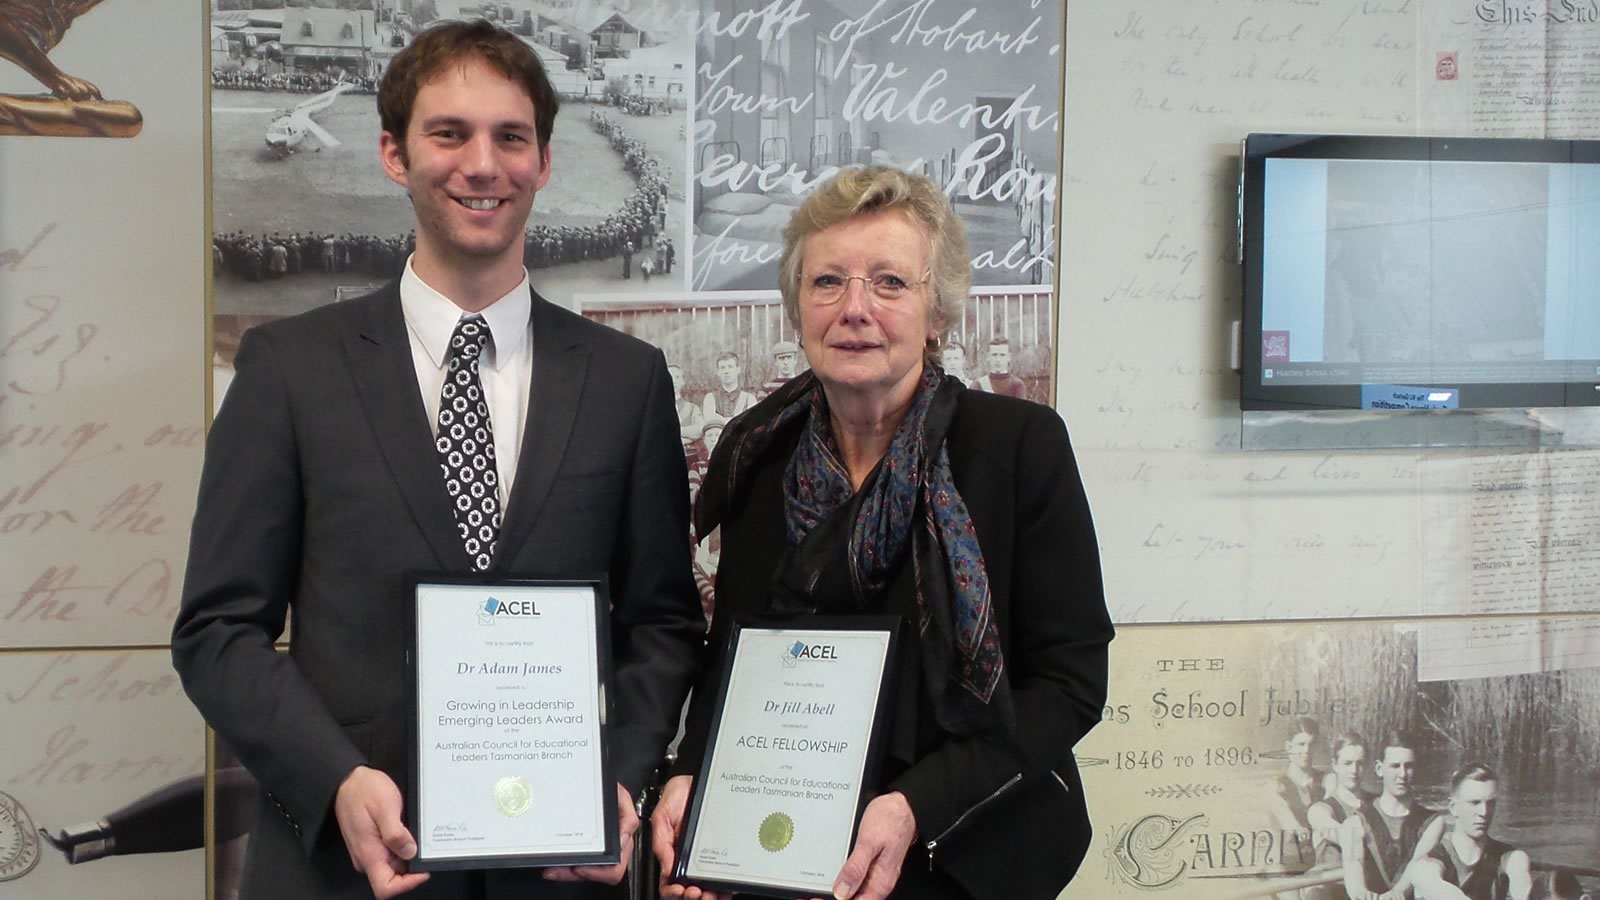 ACEL award recipients, Dr Adam James and Dr Jill Abell. (large)